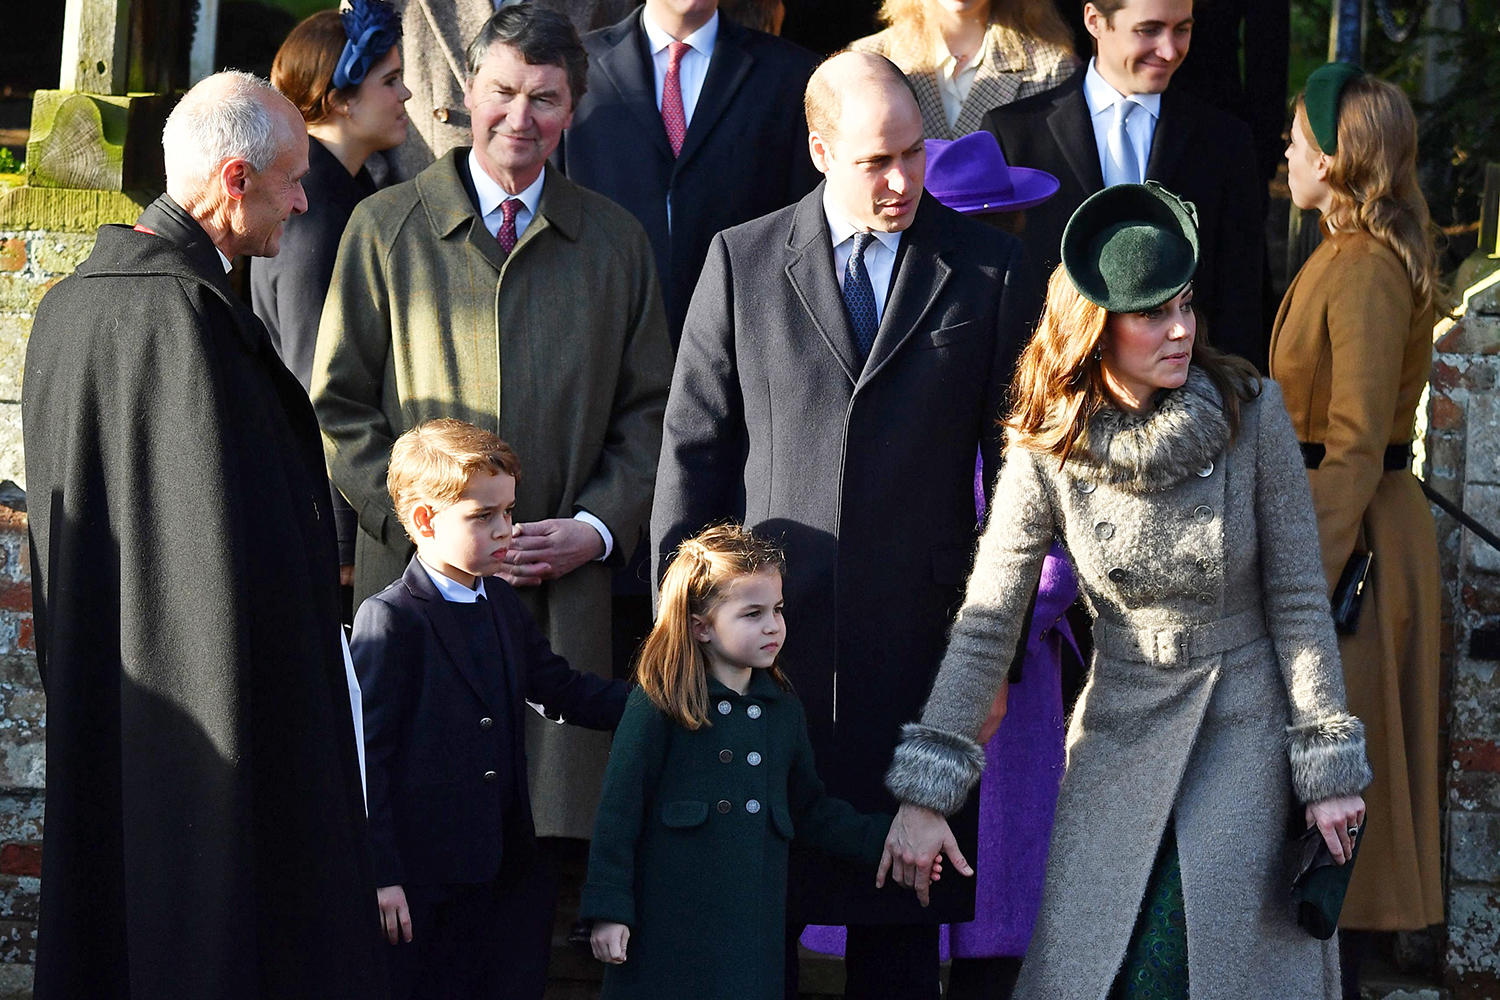 (L-R) Britain's Prince George of Cambridge, Britain's Princess Charlotte of Cambridge, Britain's Prince William, Duke of Cambridge and Britain's Catherine, Duchess of Cambridge leave after the Royal Family's traditional Christmas Day service at St Mary Magdalene Church in Sandringham, Norfolk, eastern England, on December 25, 2019. (Photo by Ben STANSALL / AFP) (Photo by BEN STANSALL/AFP via Getty Images)